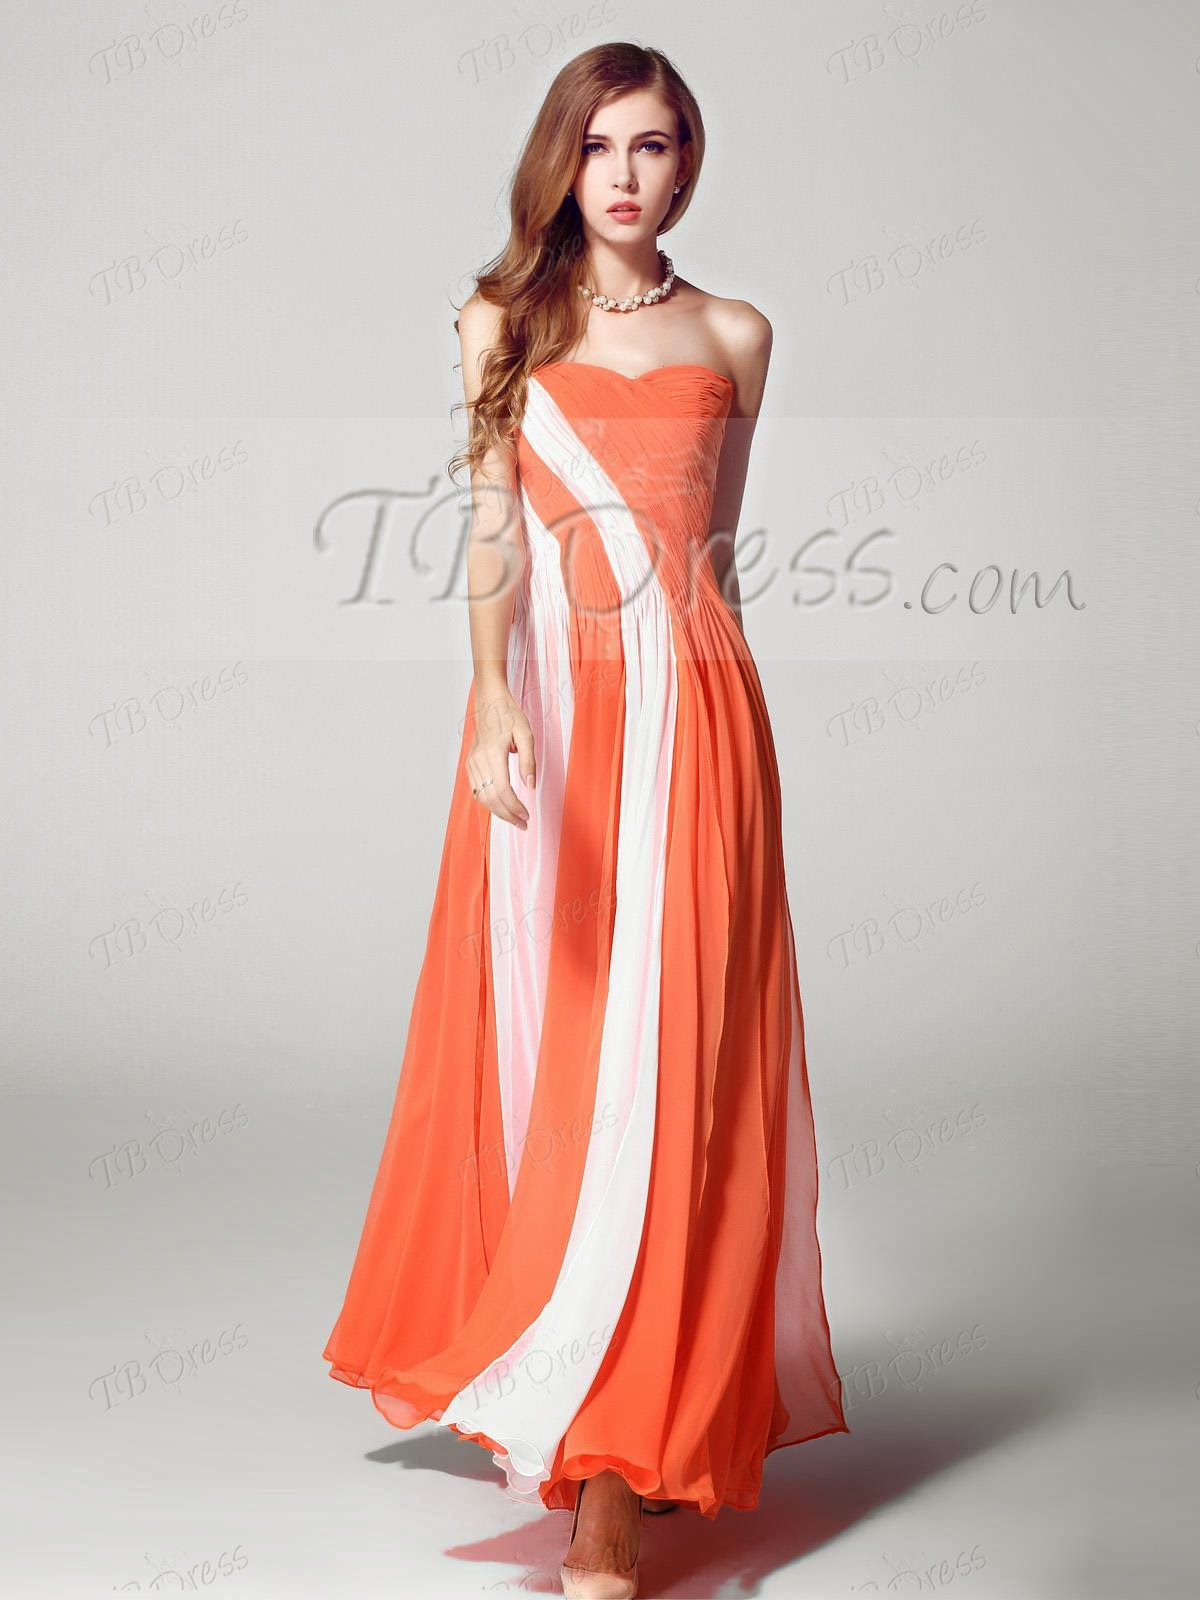 http://www.tbdress.com/product/Elegant-Ruched-Sweetheart-Matching-Color-Floor-Length-Evening-Dress-11047772.html